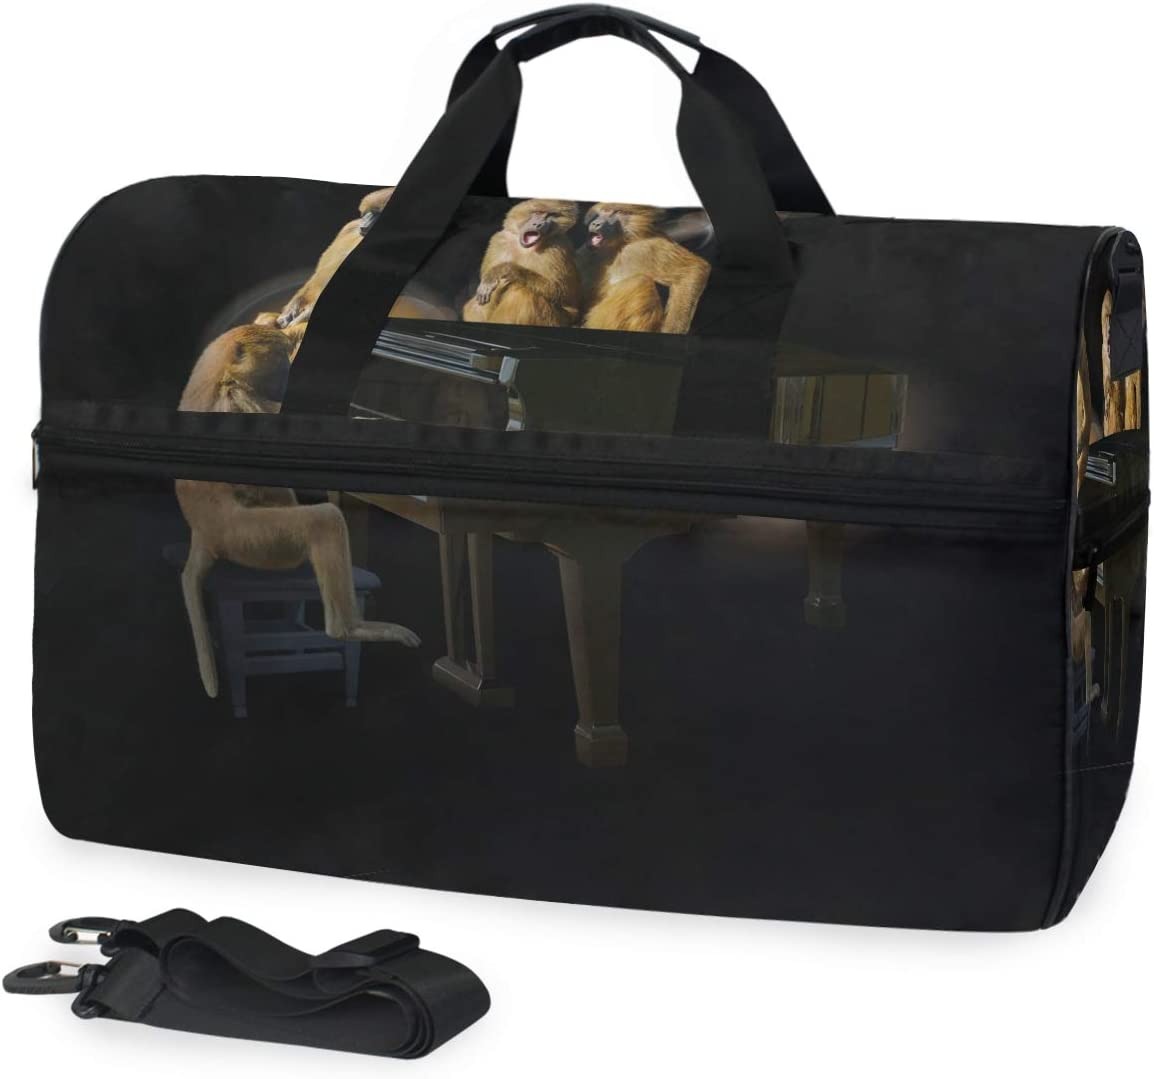 MUOOUM Monkey Piano Singer Large Duffle Bags Sports Gym Bag with Shoes Compartment for Men and Women